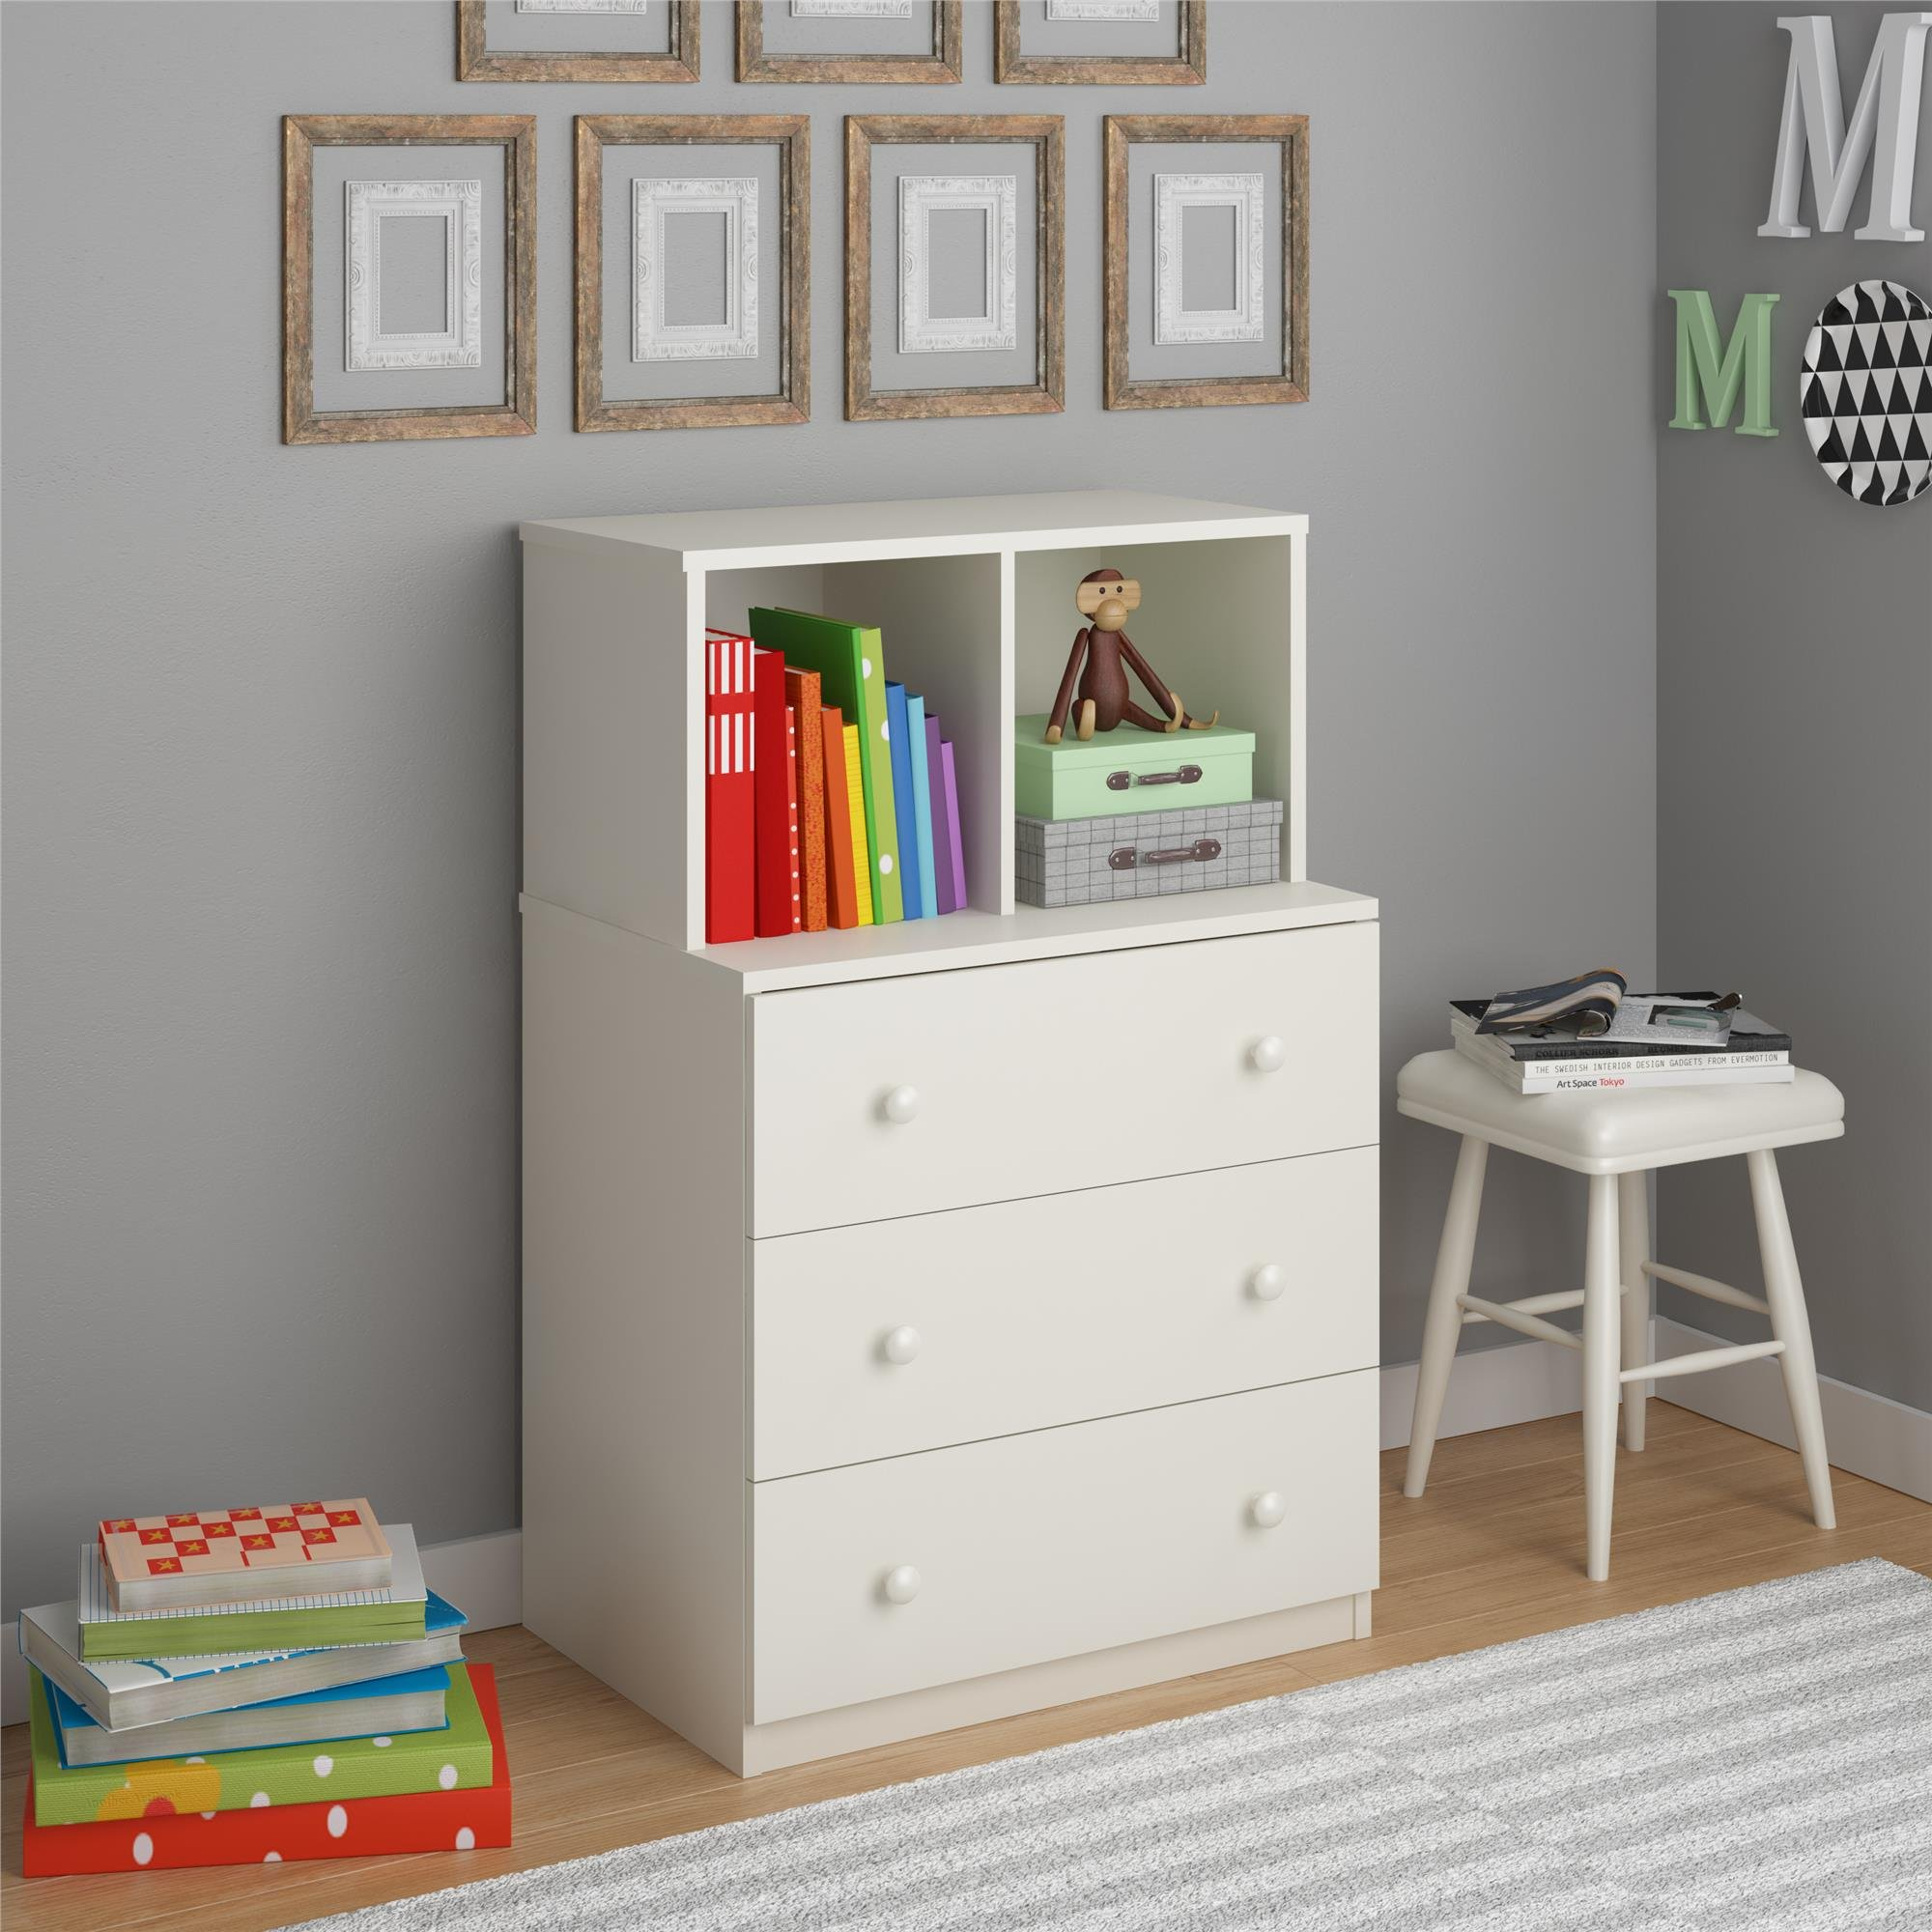 Ameriwood Home Skyler 3 Drawer Dresser with Cubbies, White by Ameriwood Home (Image #3)